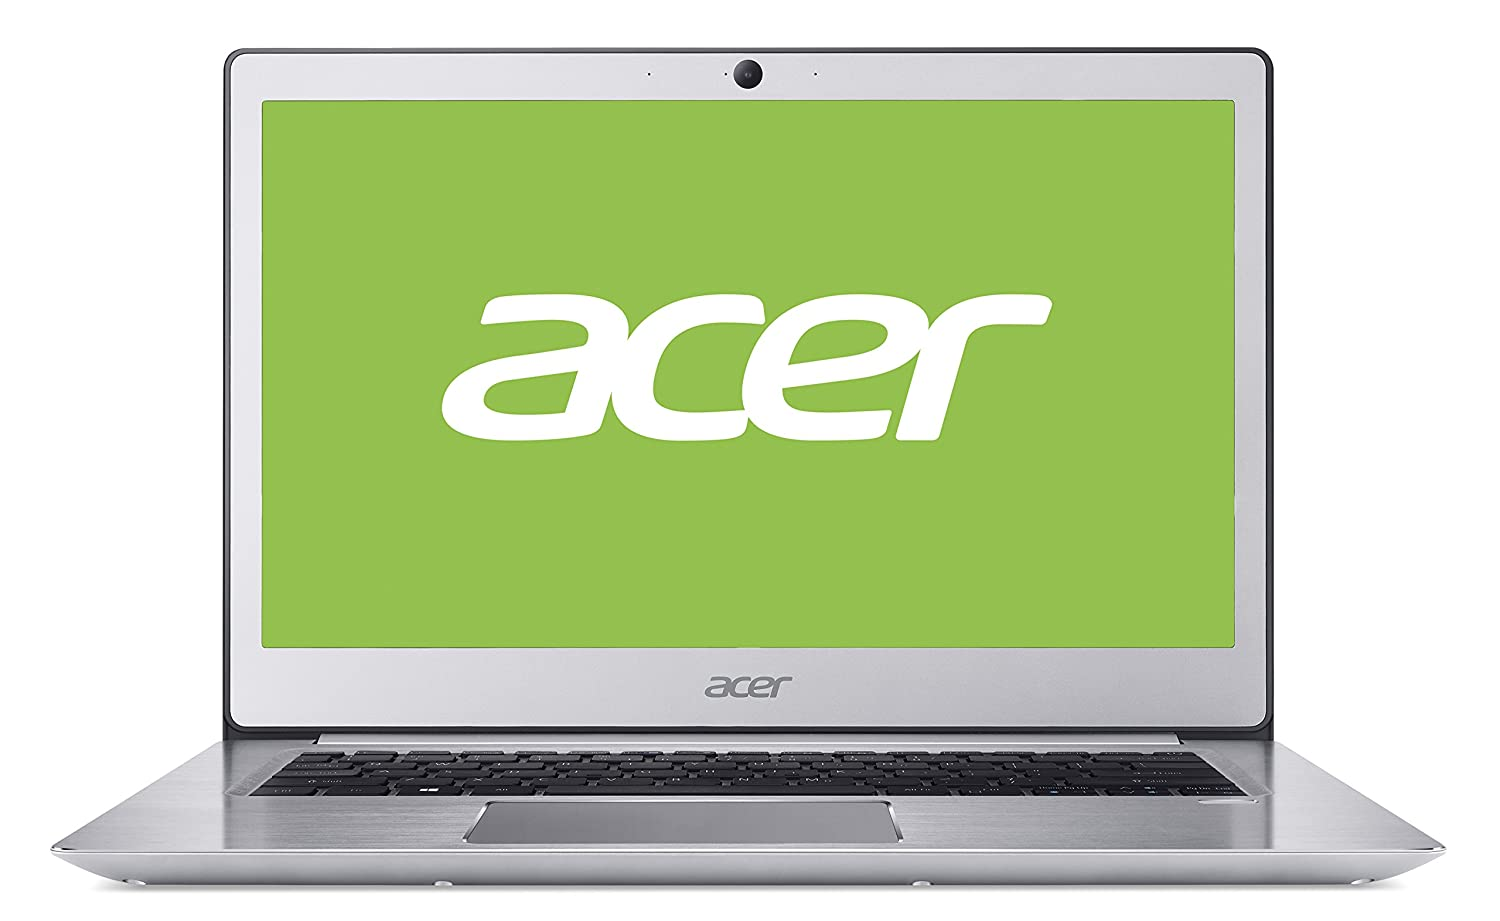 Acer Swift 3, 8th Gen Intel Core i7-8550U, NVIDIA GeForce MX150, 14